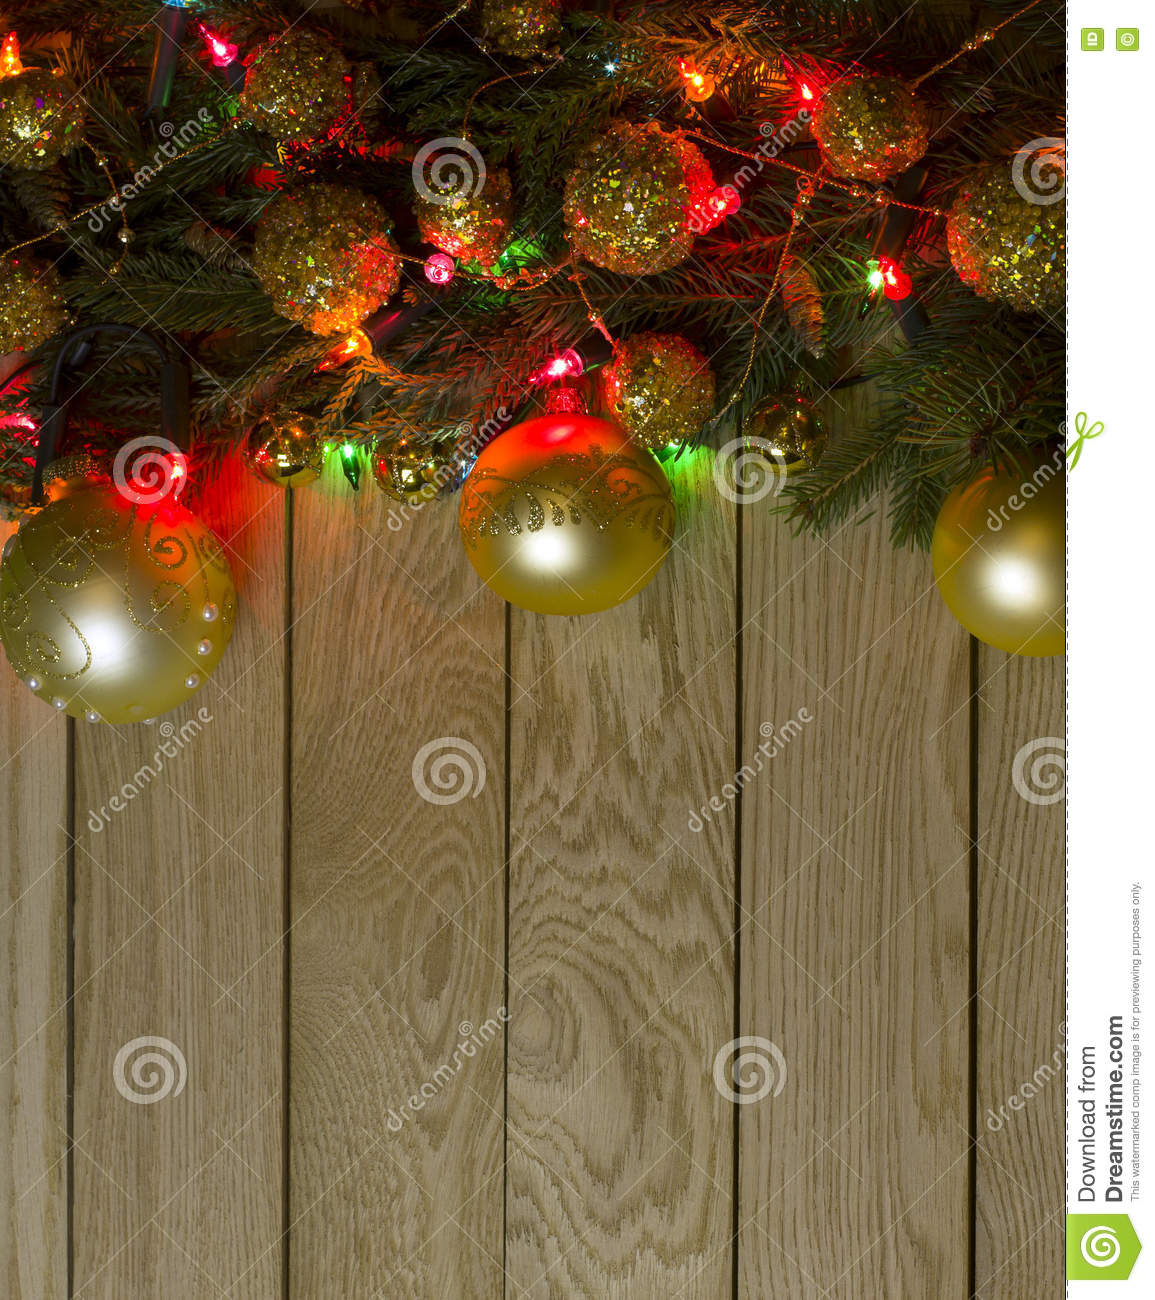 new years top border frame from christmas tree fir branches golden pine cones balls garland lights on vertical old wooden desk table background